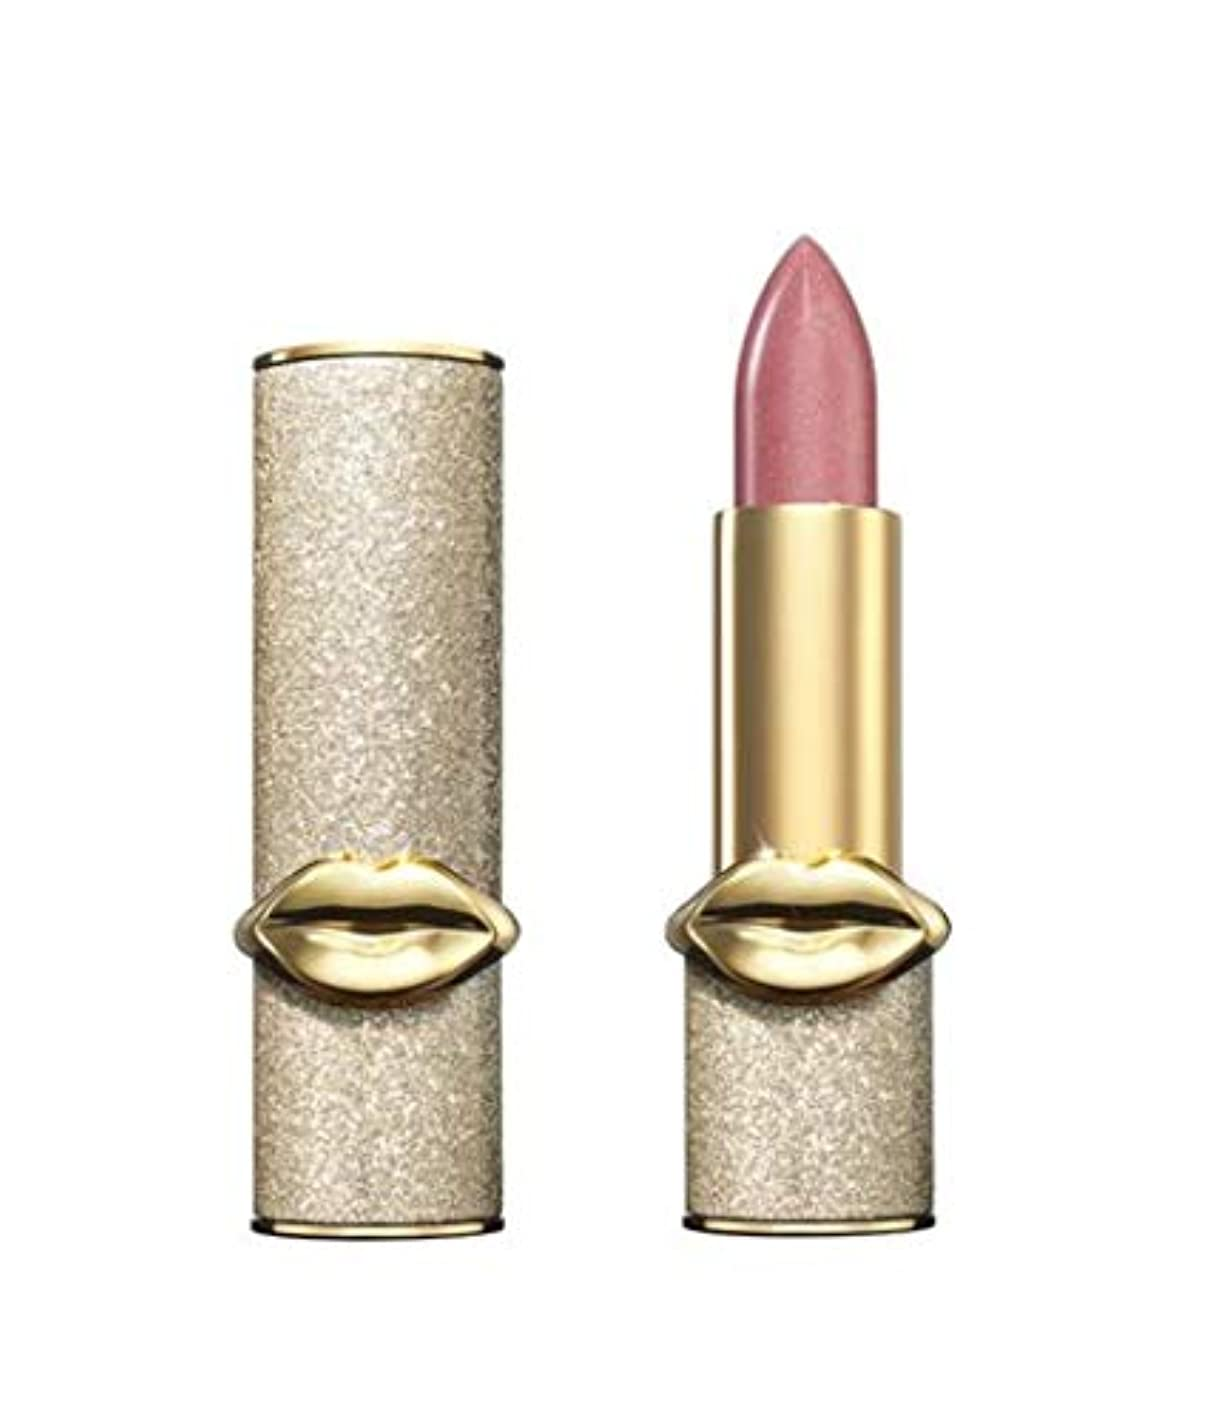 送信する分離する聖域PAT MCGRATH LABS BlitzTrance™ Lipstick (Lady Stardust)